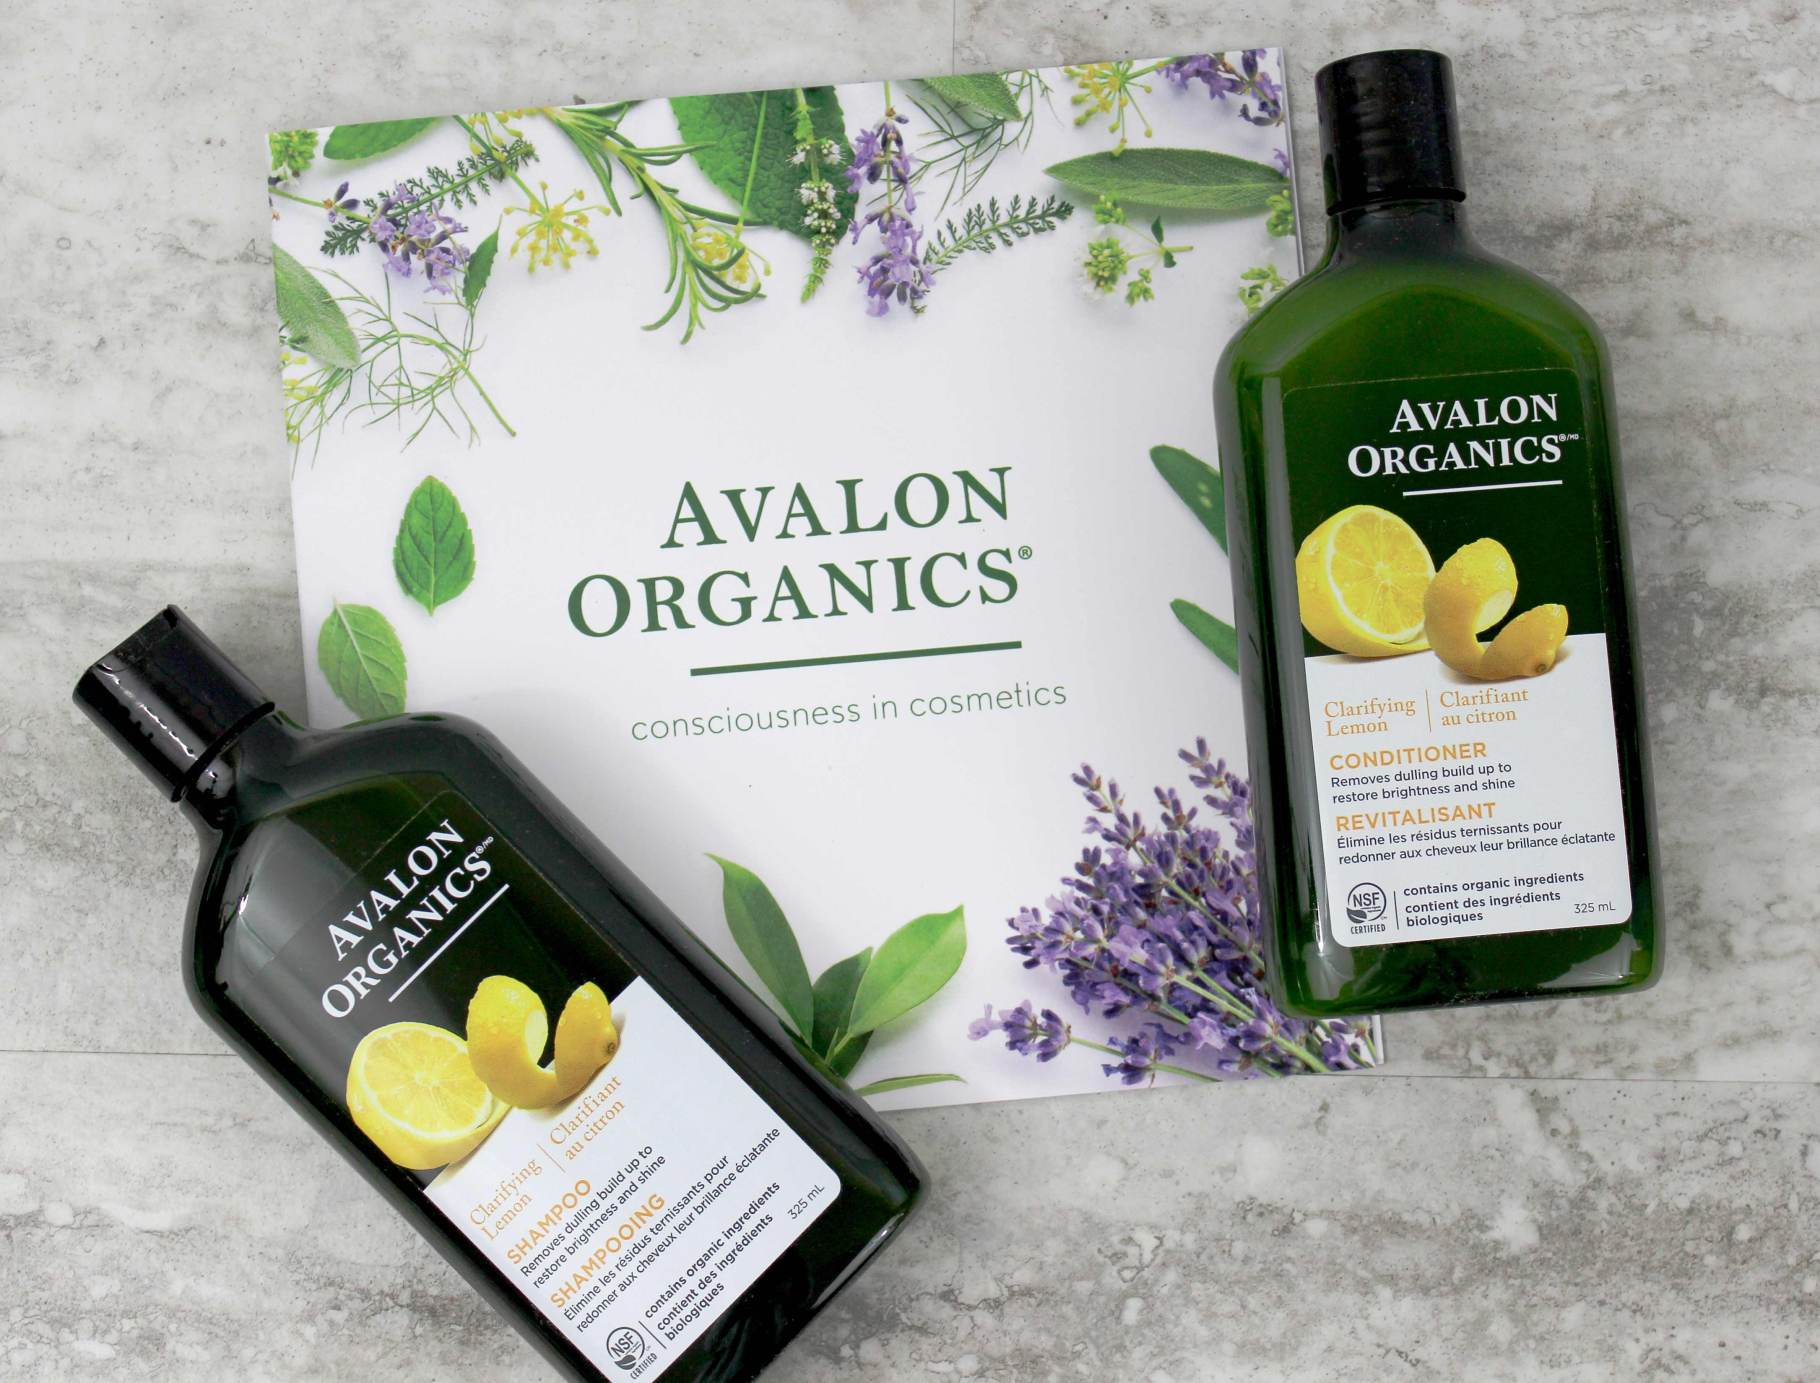 Avalon Organics Shampoo + Conditioner | Review